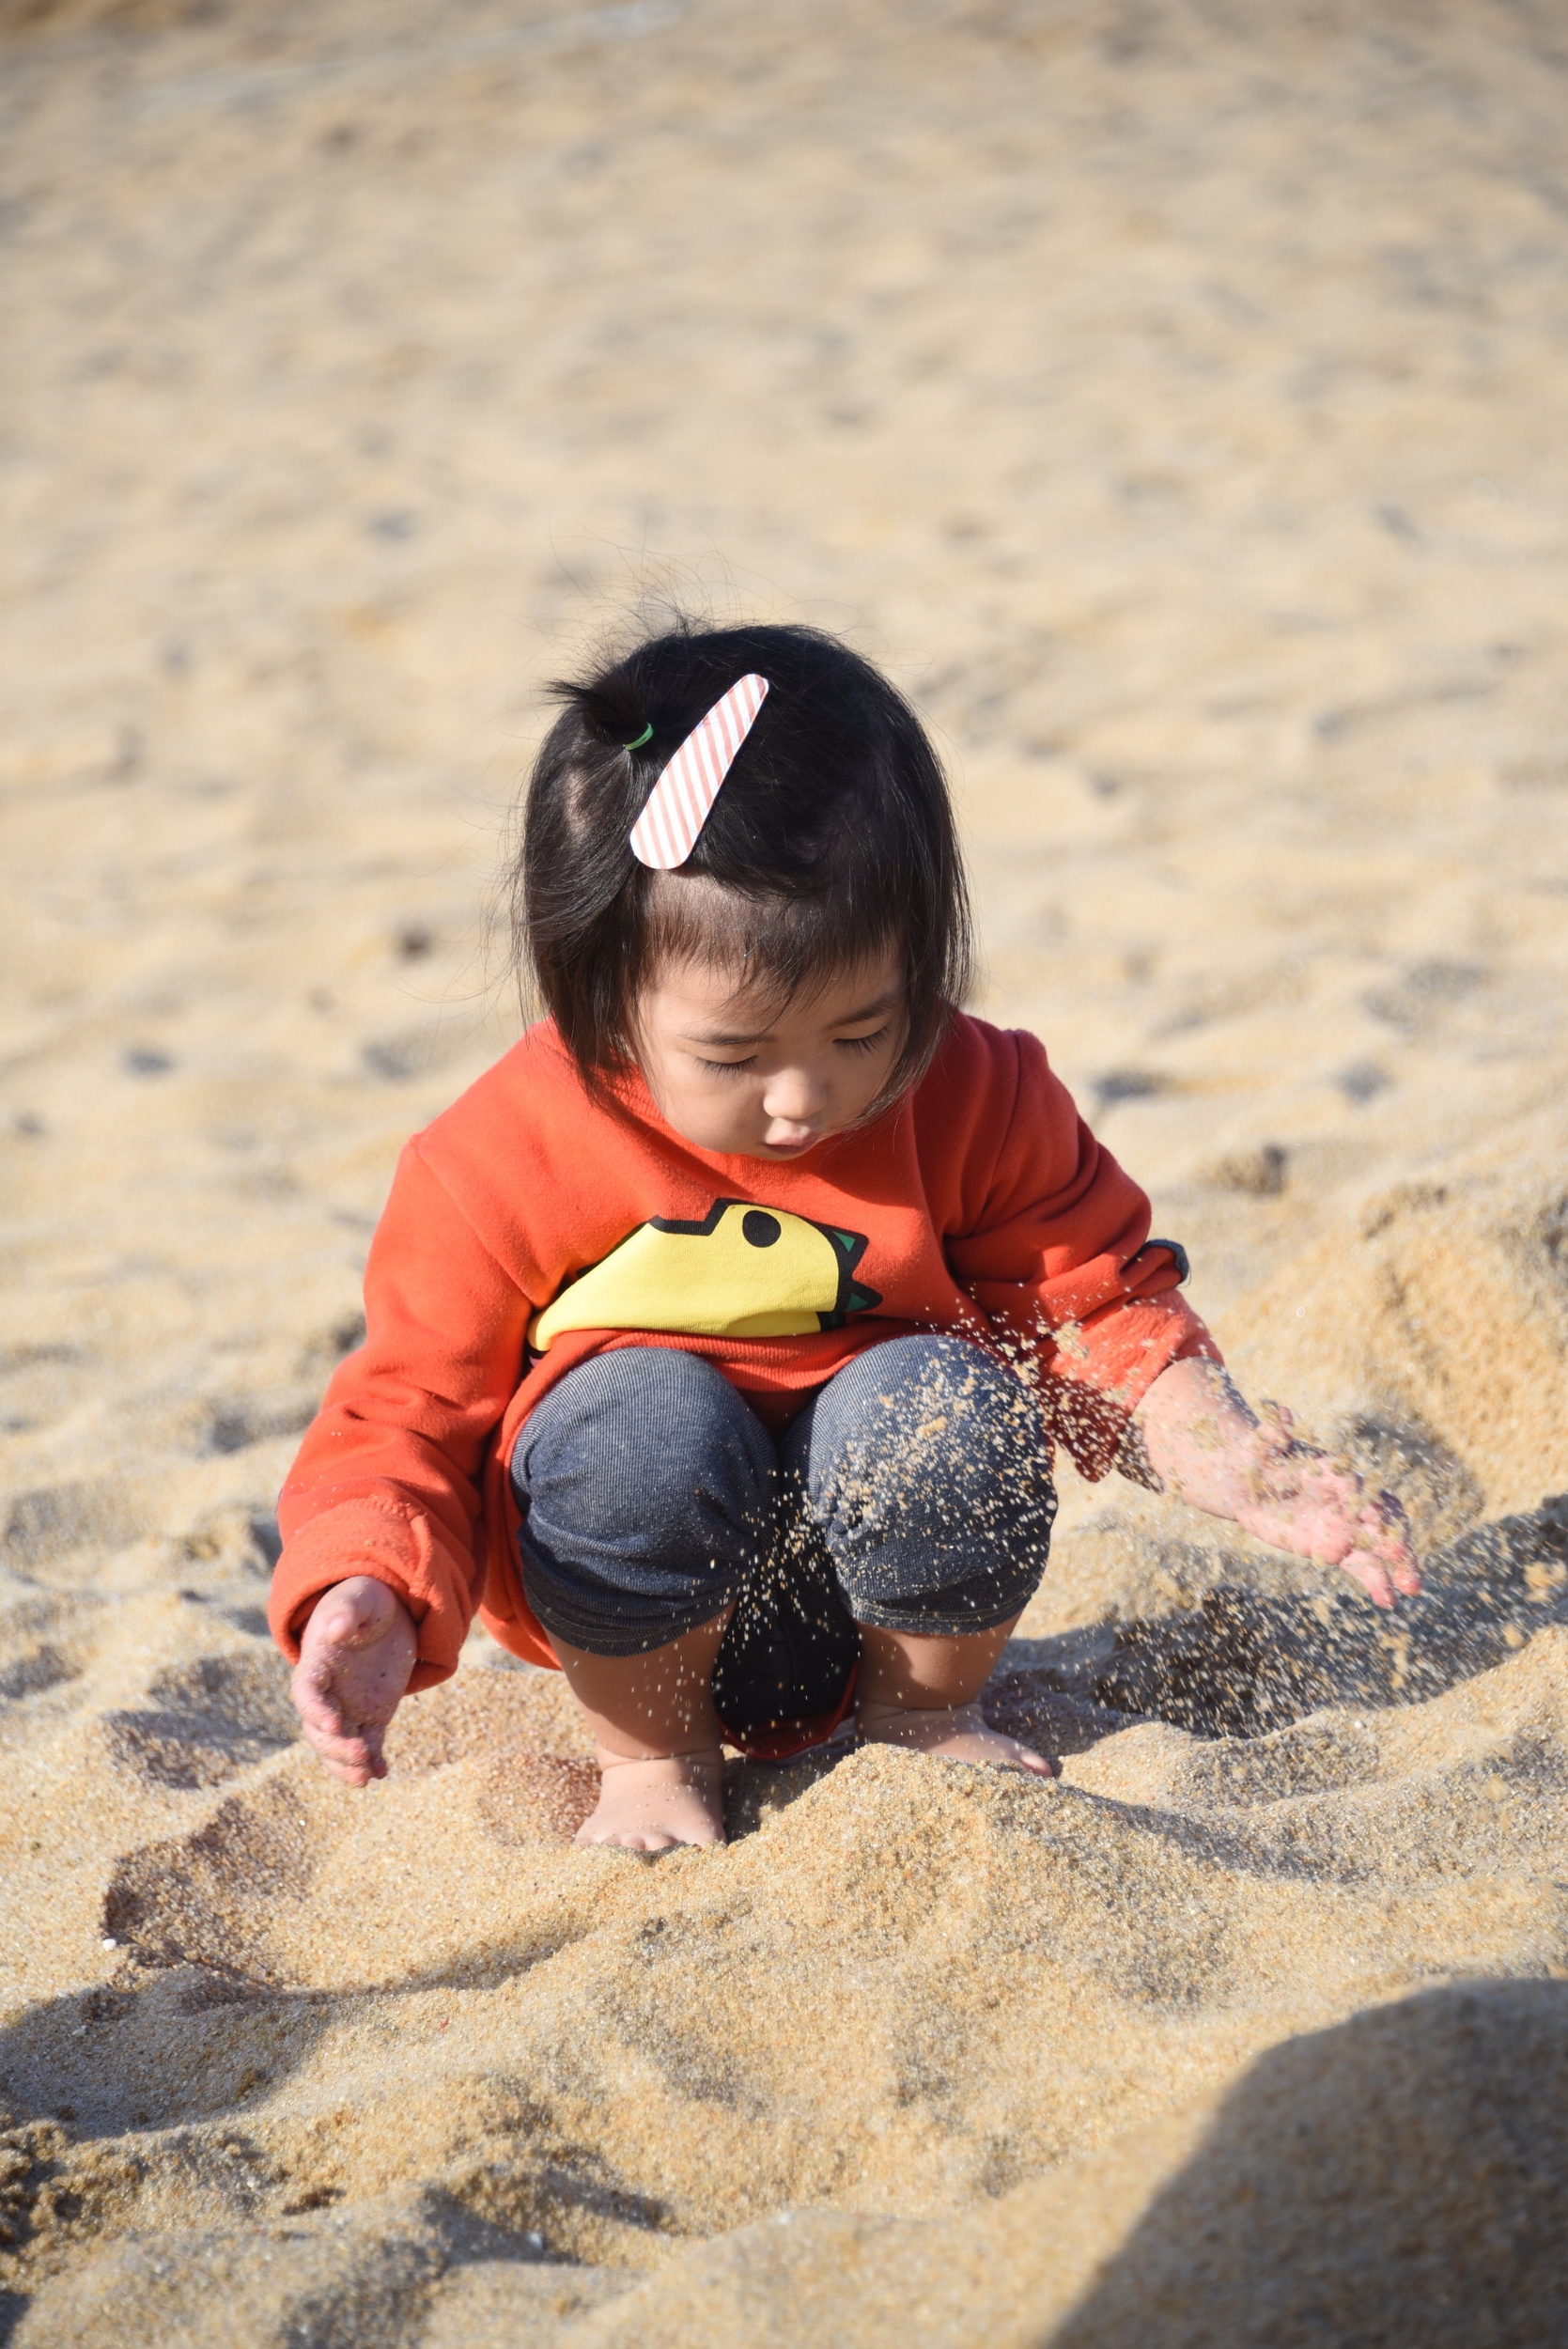 On the beach, Sokcho, South Corea